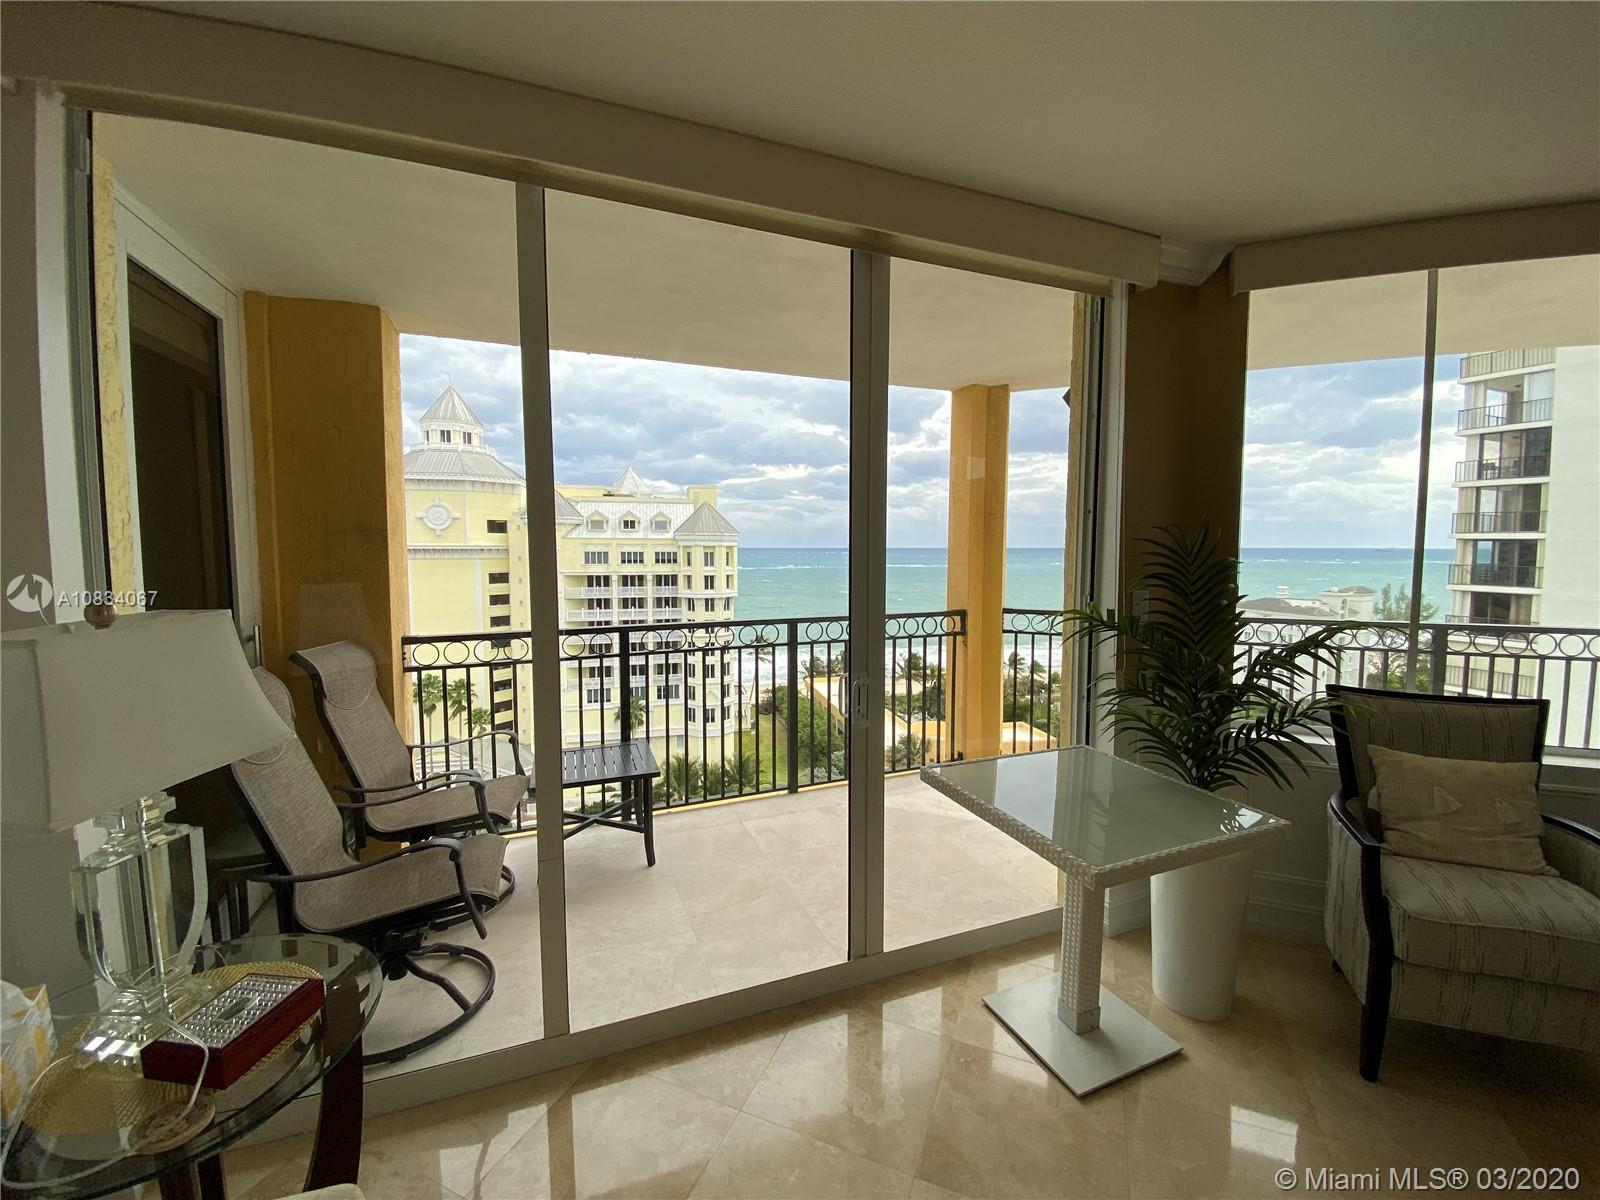 3 bedroom direct ocean condo in Ft. Lauderdale Beach. Split floor plan, marble floors and carpet in bedrooms. Balcony's from each bedroom suite, and large wrap around balcony for direct ocean, & intercostal views. The Vue is a luxury condo with private beach club access, 2 pools and spas, valet parking, and pet friendly. Excellent location near restaurants and shops. New lobby, fitness center and more. Great value for spacious 3br with direct ocean views.